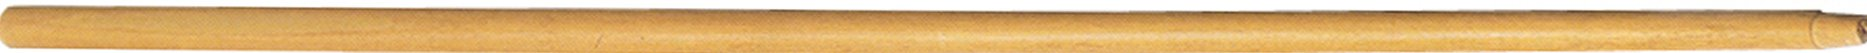 Yardy Short Rest Stick 60-inch